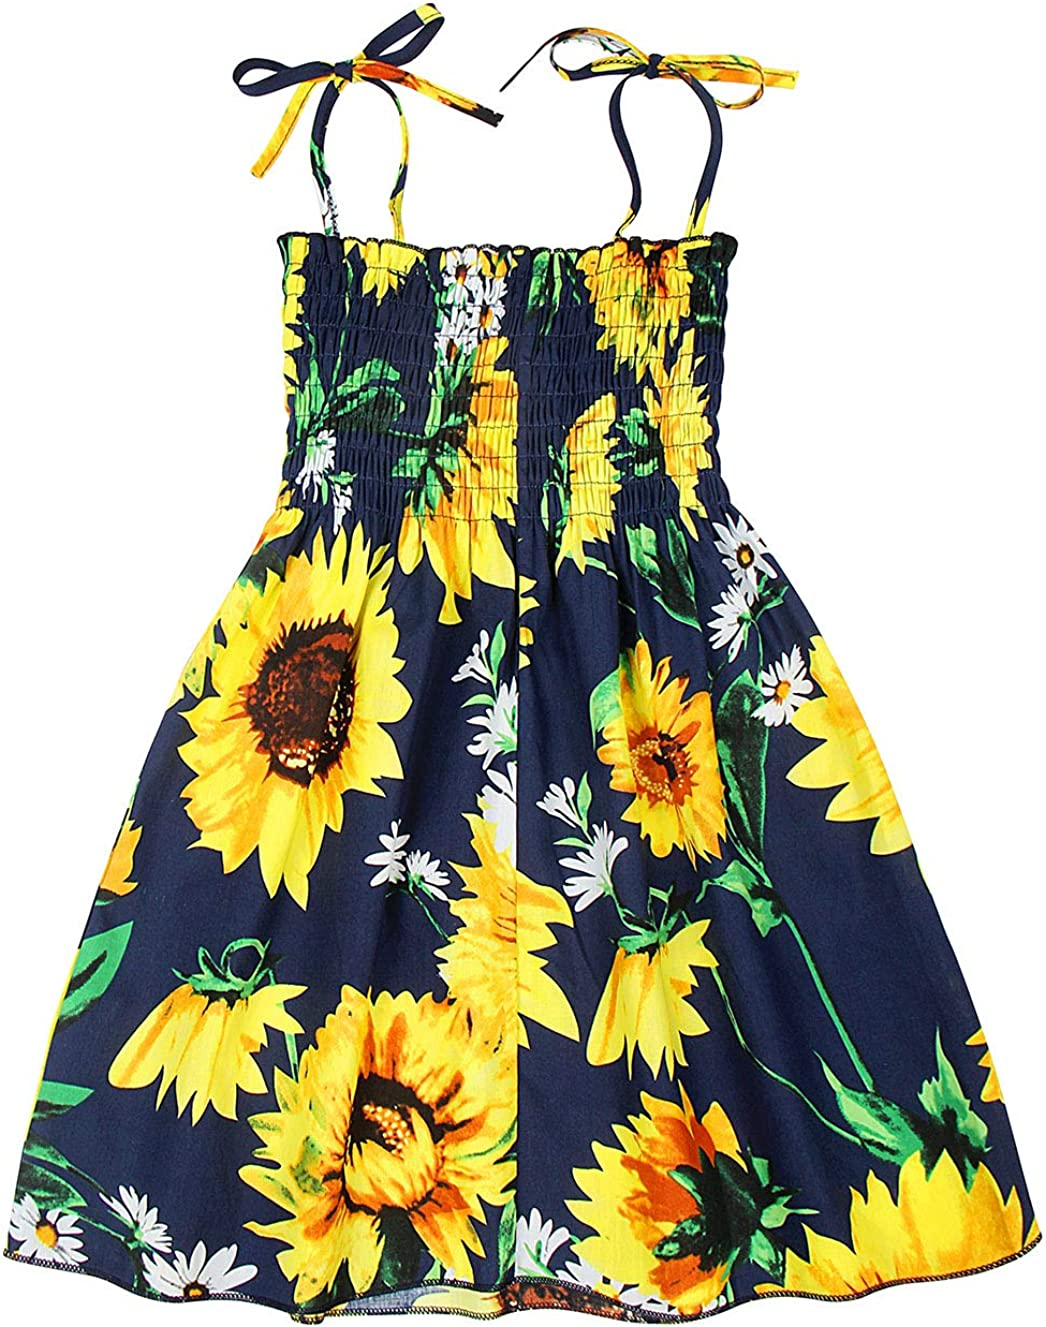 Cotrio Baby Girls Boho Summer Dress Toddler Kids Floral Casual Sundress Outfits